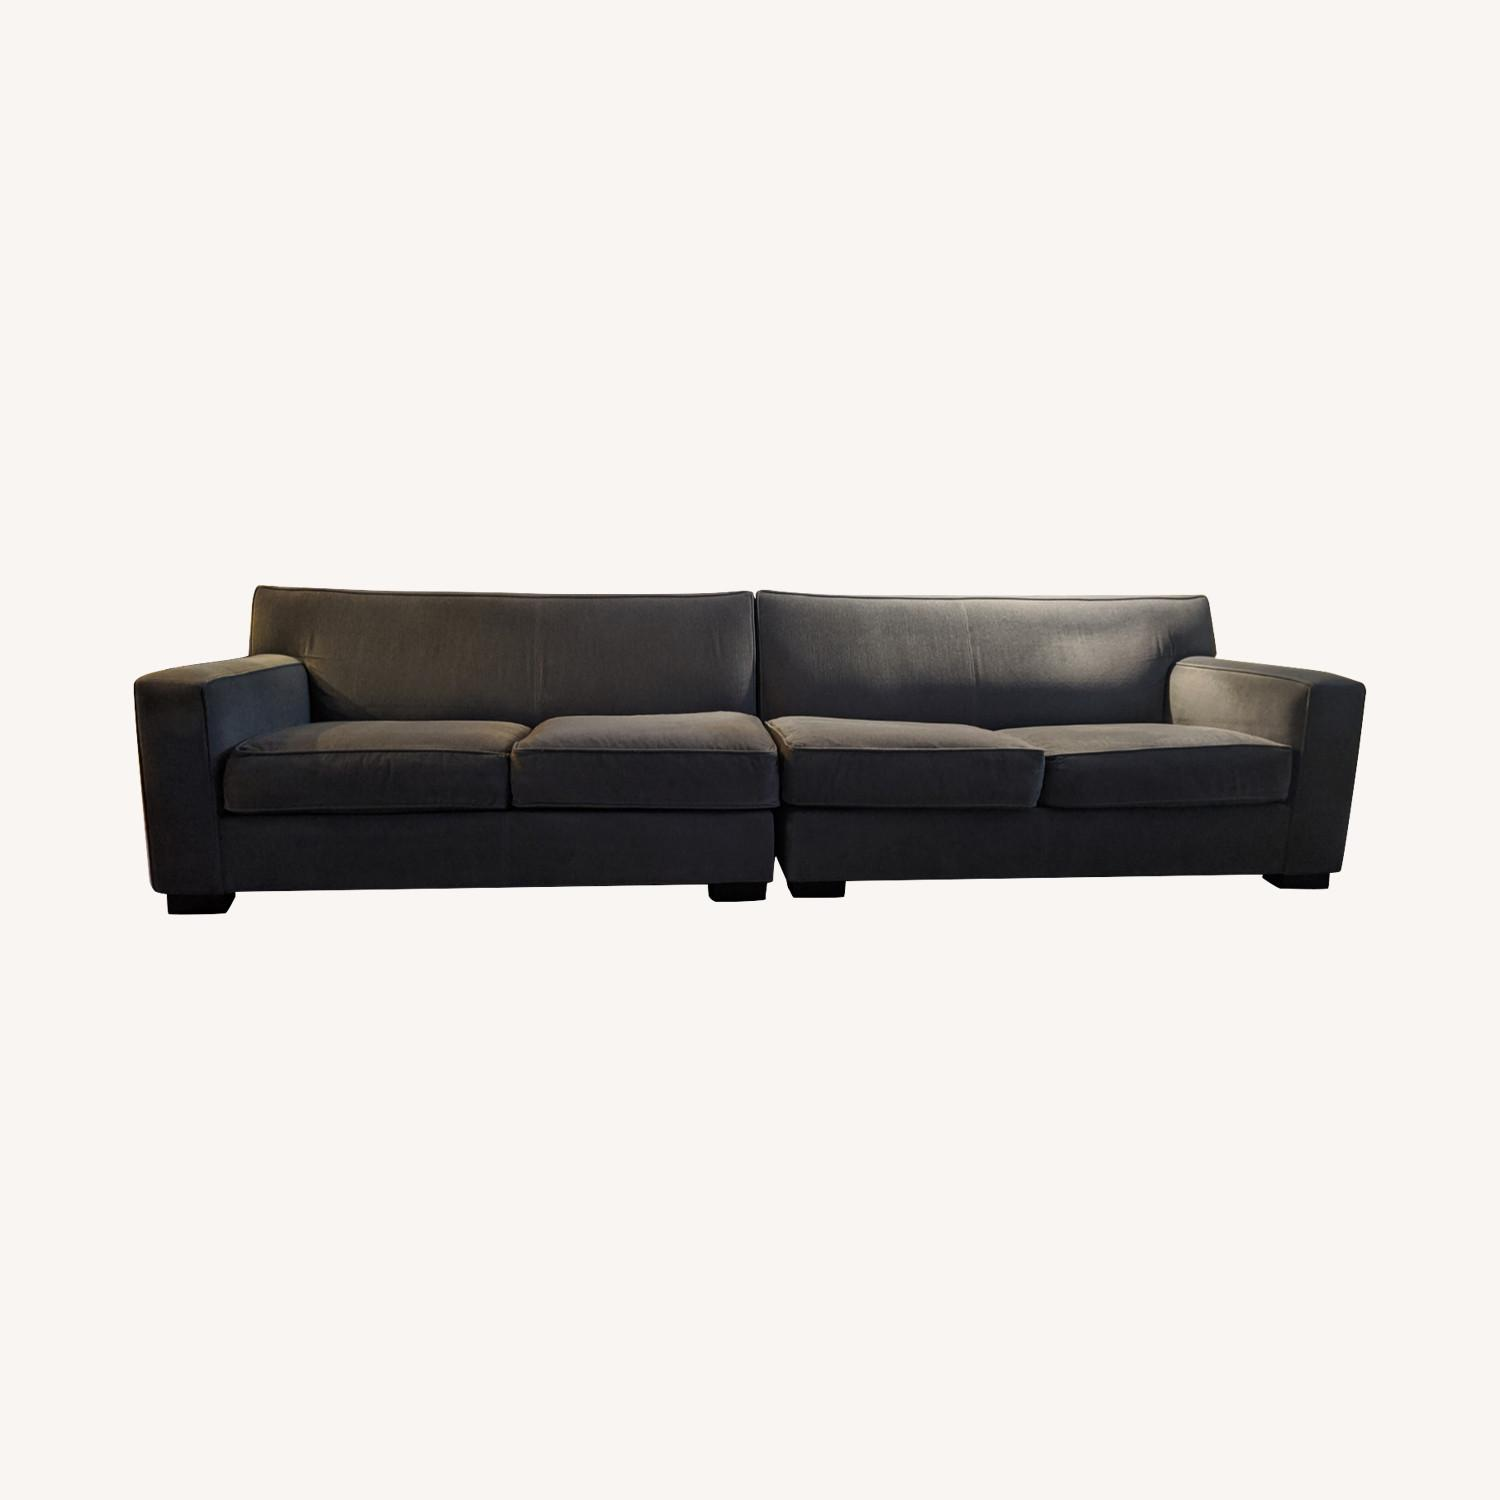 Mitchell Gold + Bob Williams Jean Luc 2-piece Sectional - image-0